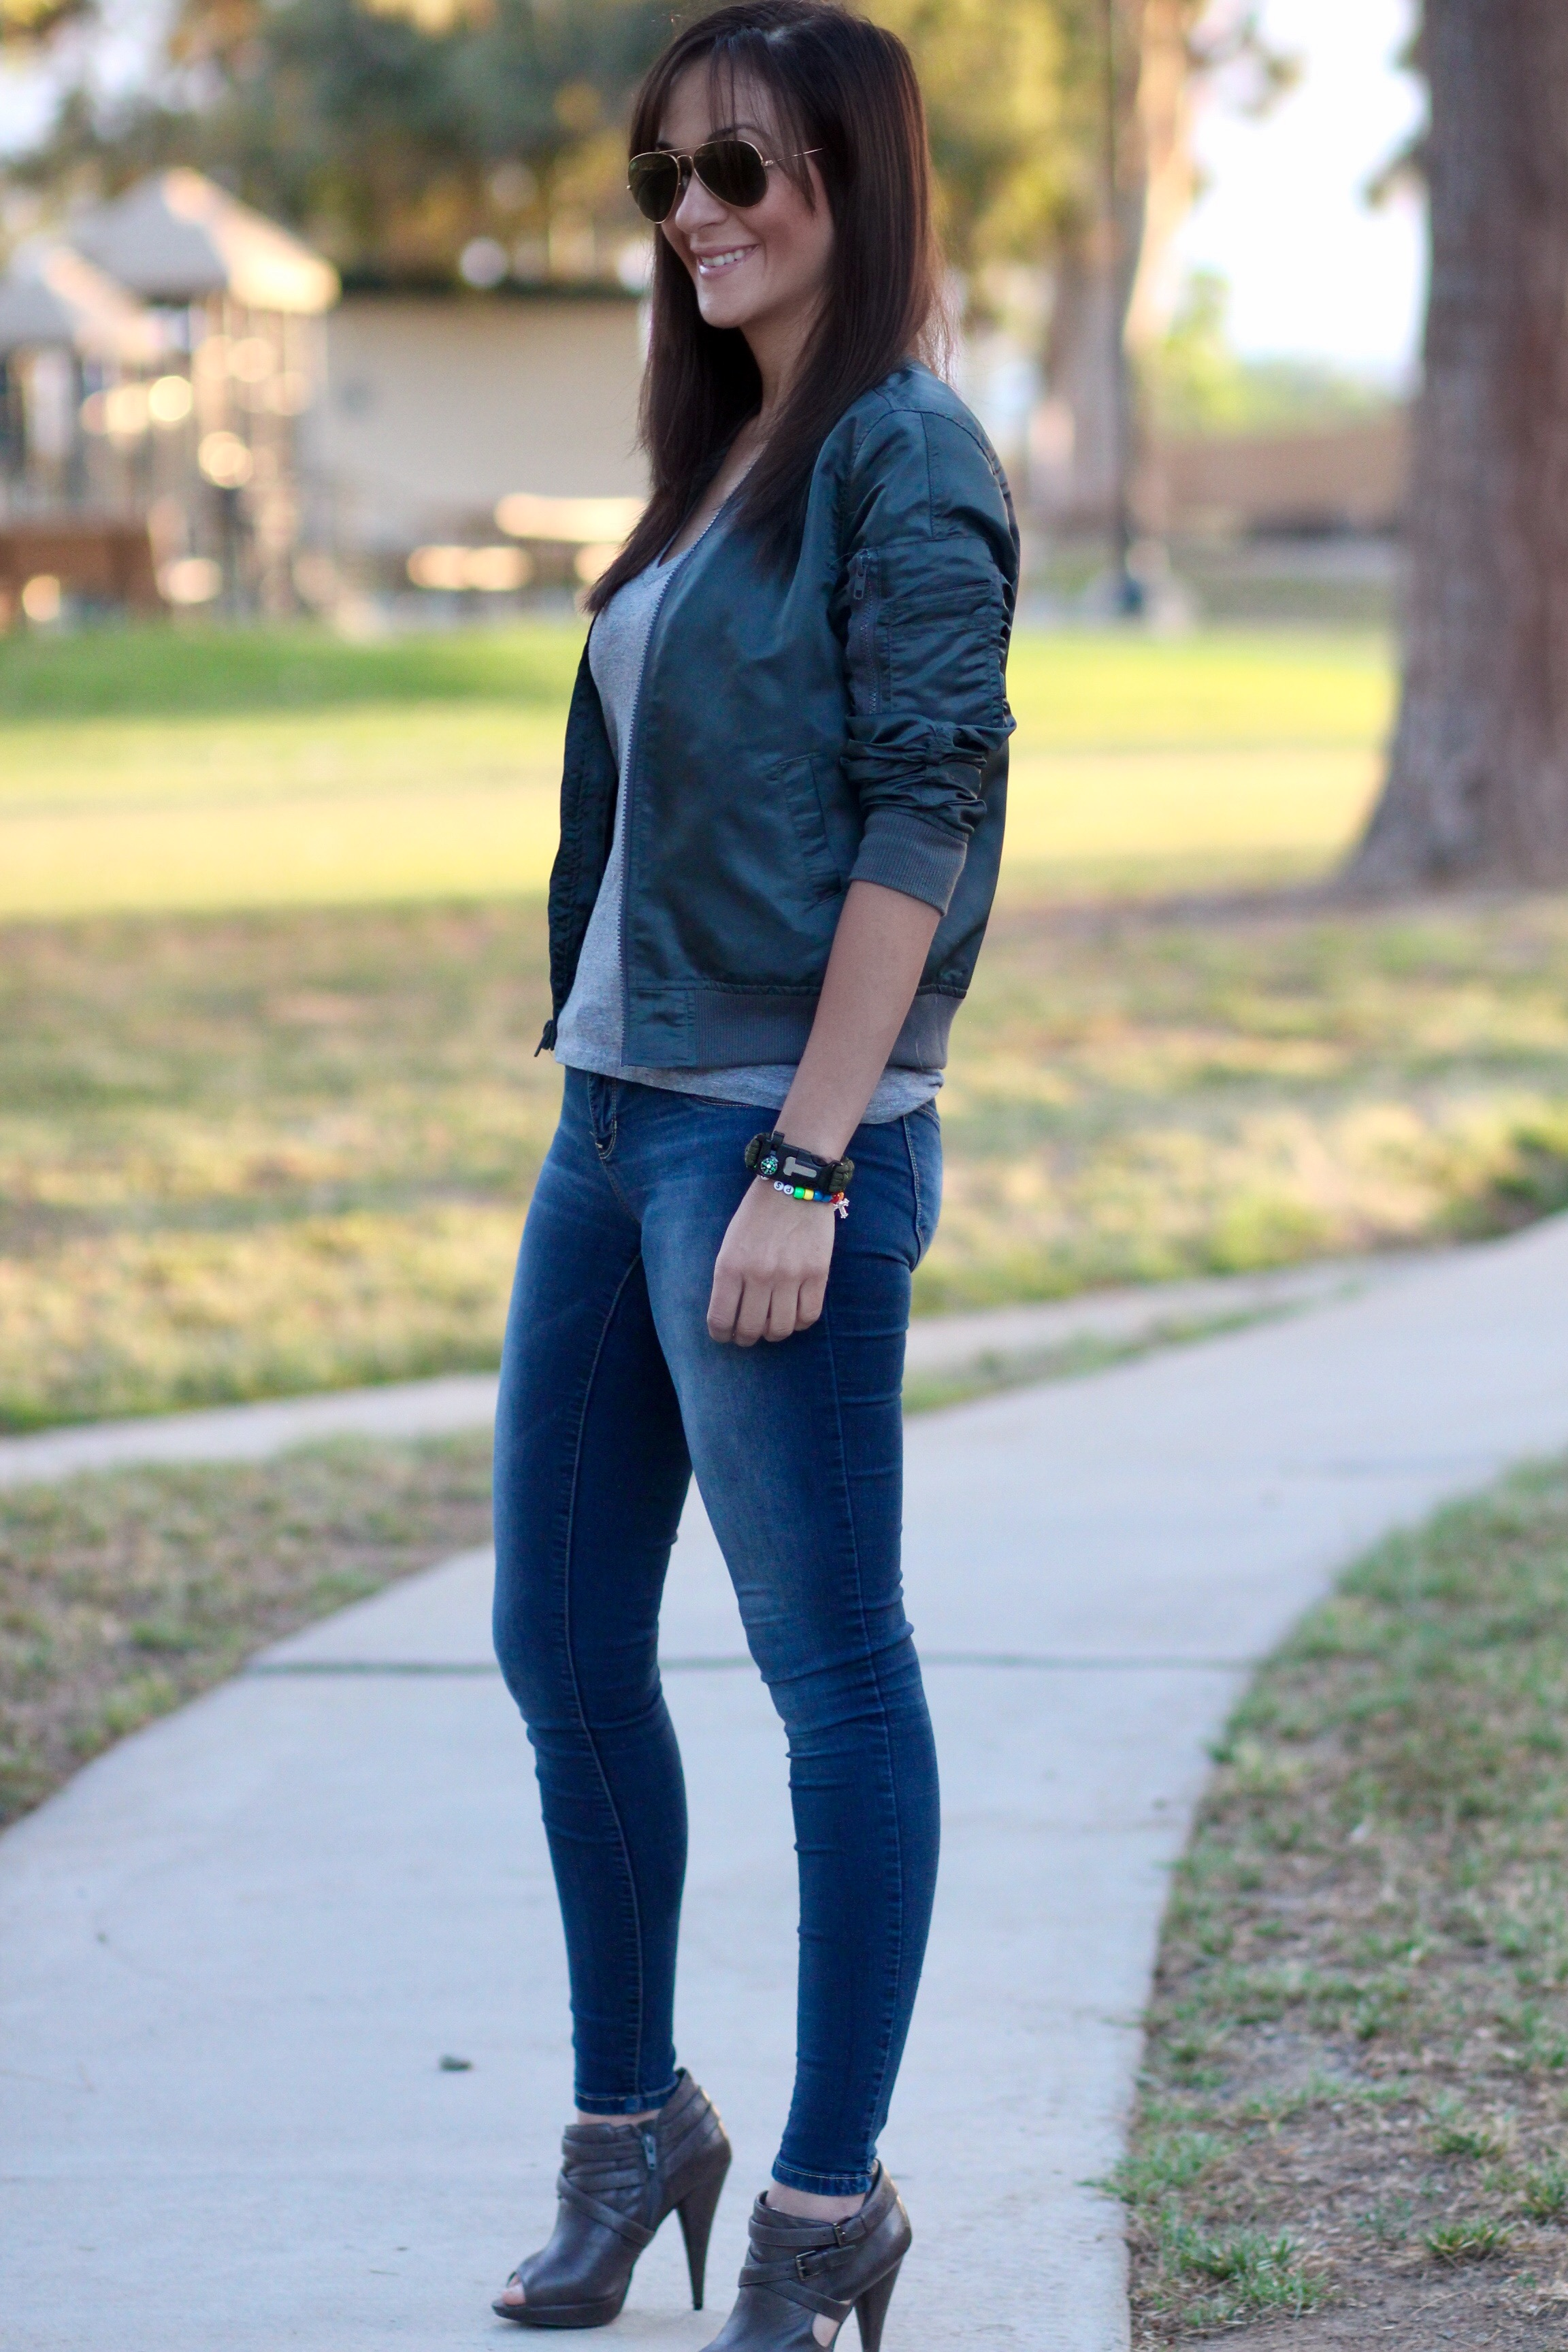 Fashion blogger Marianne Harper in bomber jacket and booties